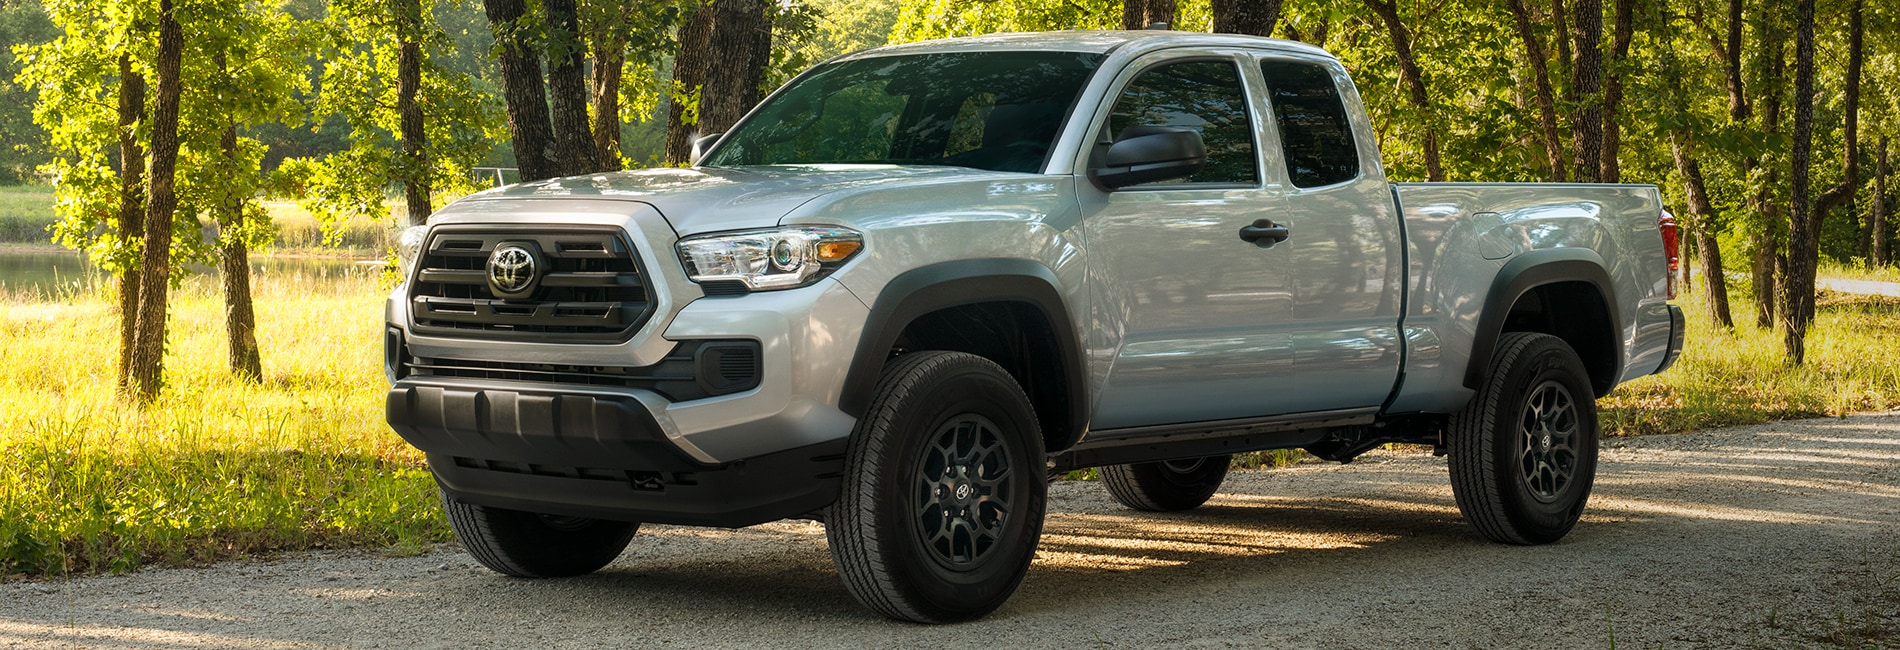 Toyota Tacoma Exterior Vehicle Features